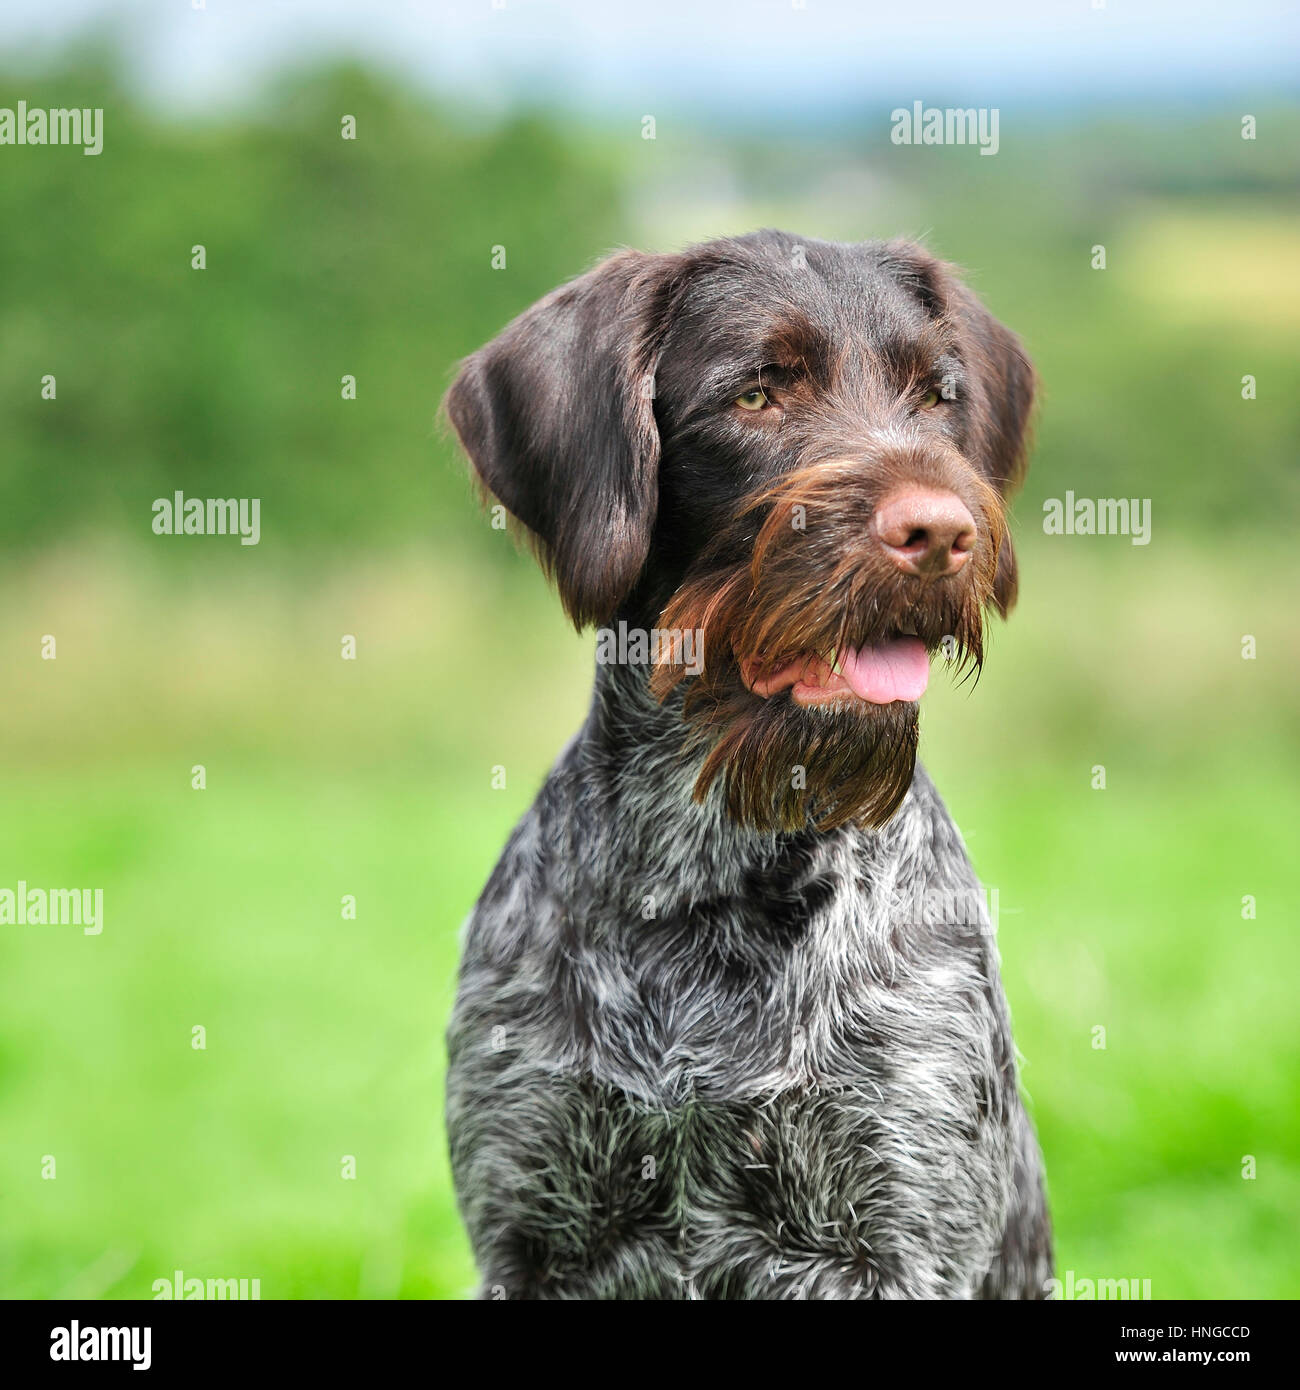 Gwp German Wirehaired Pointer Stock Photos & Gwp German Wirehaired ...